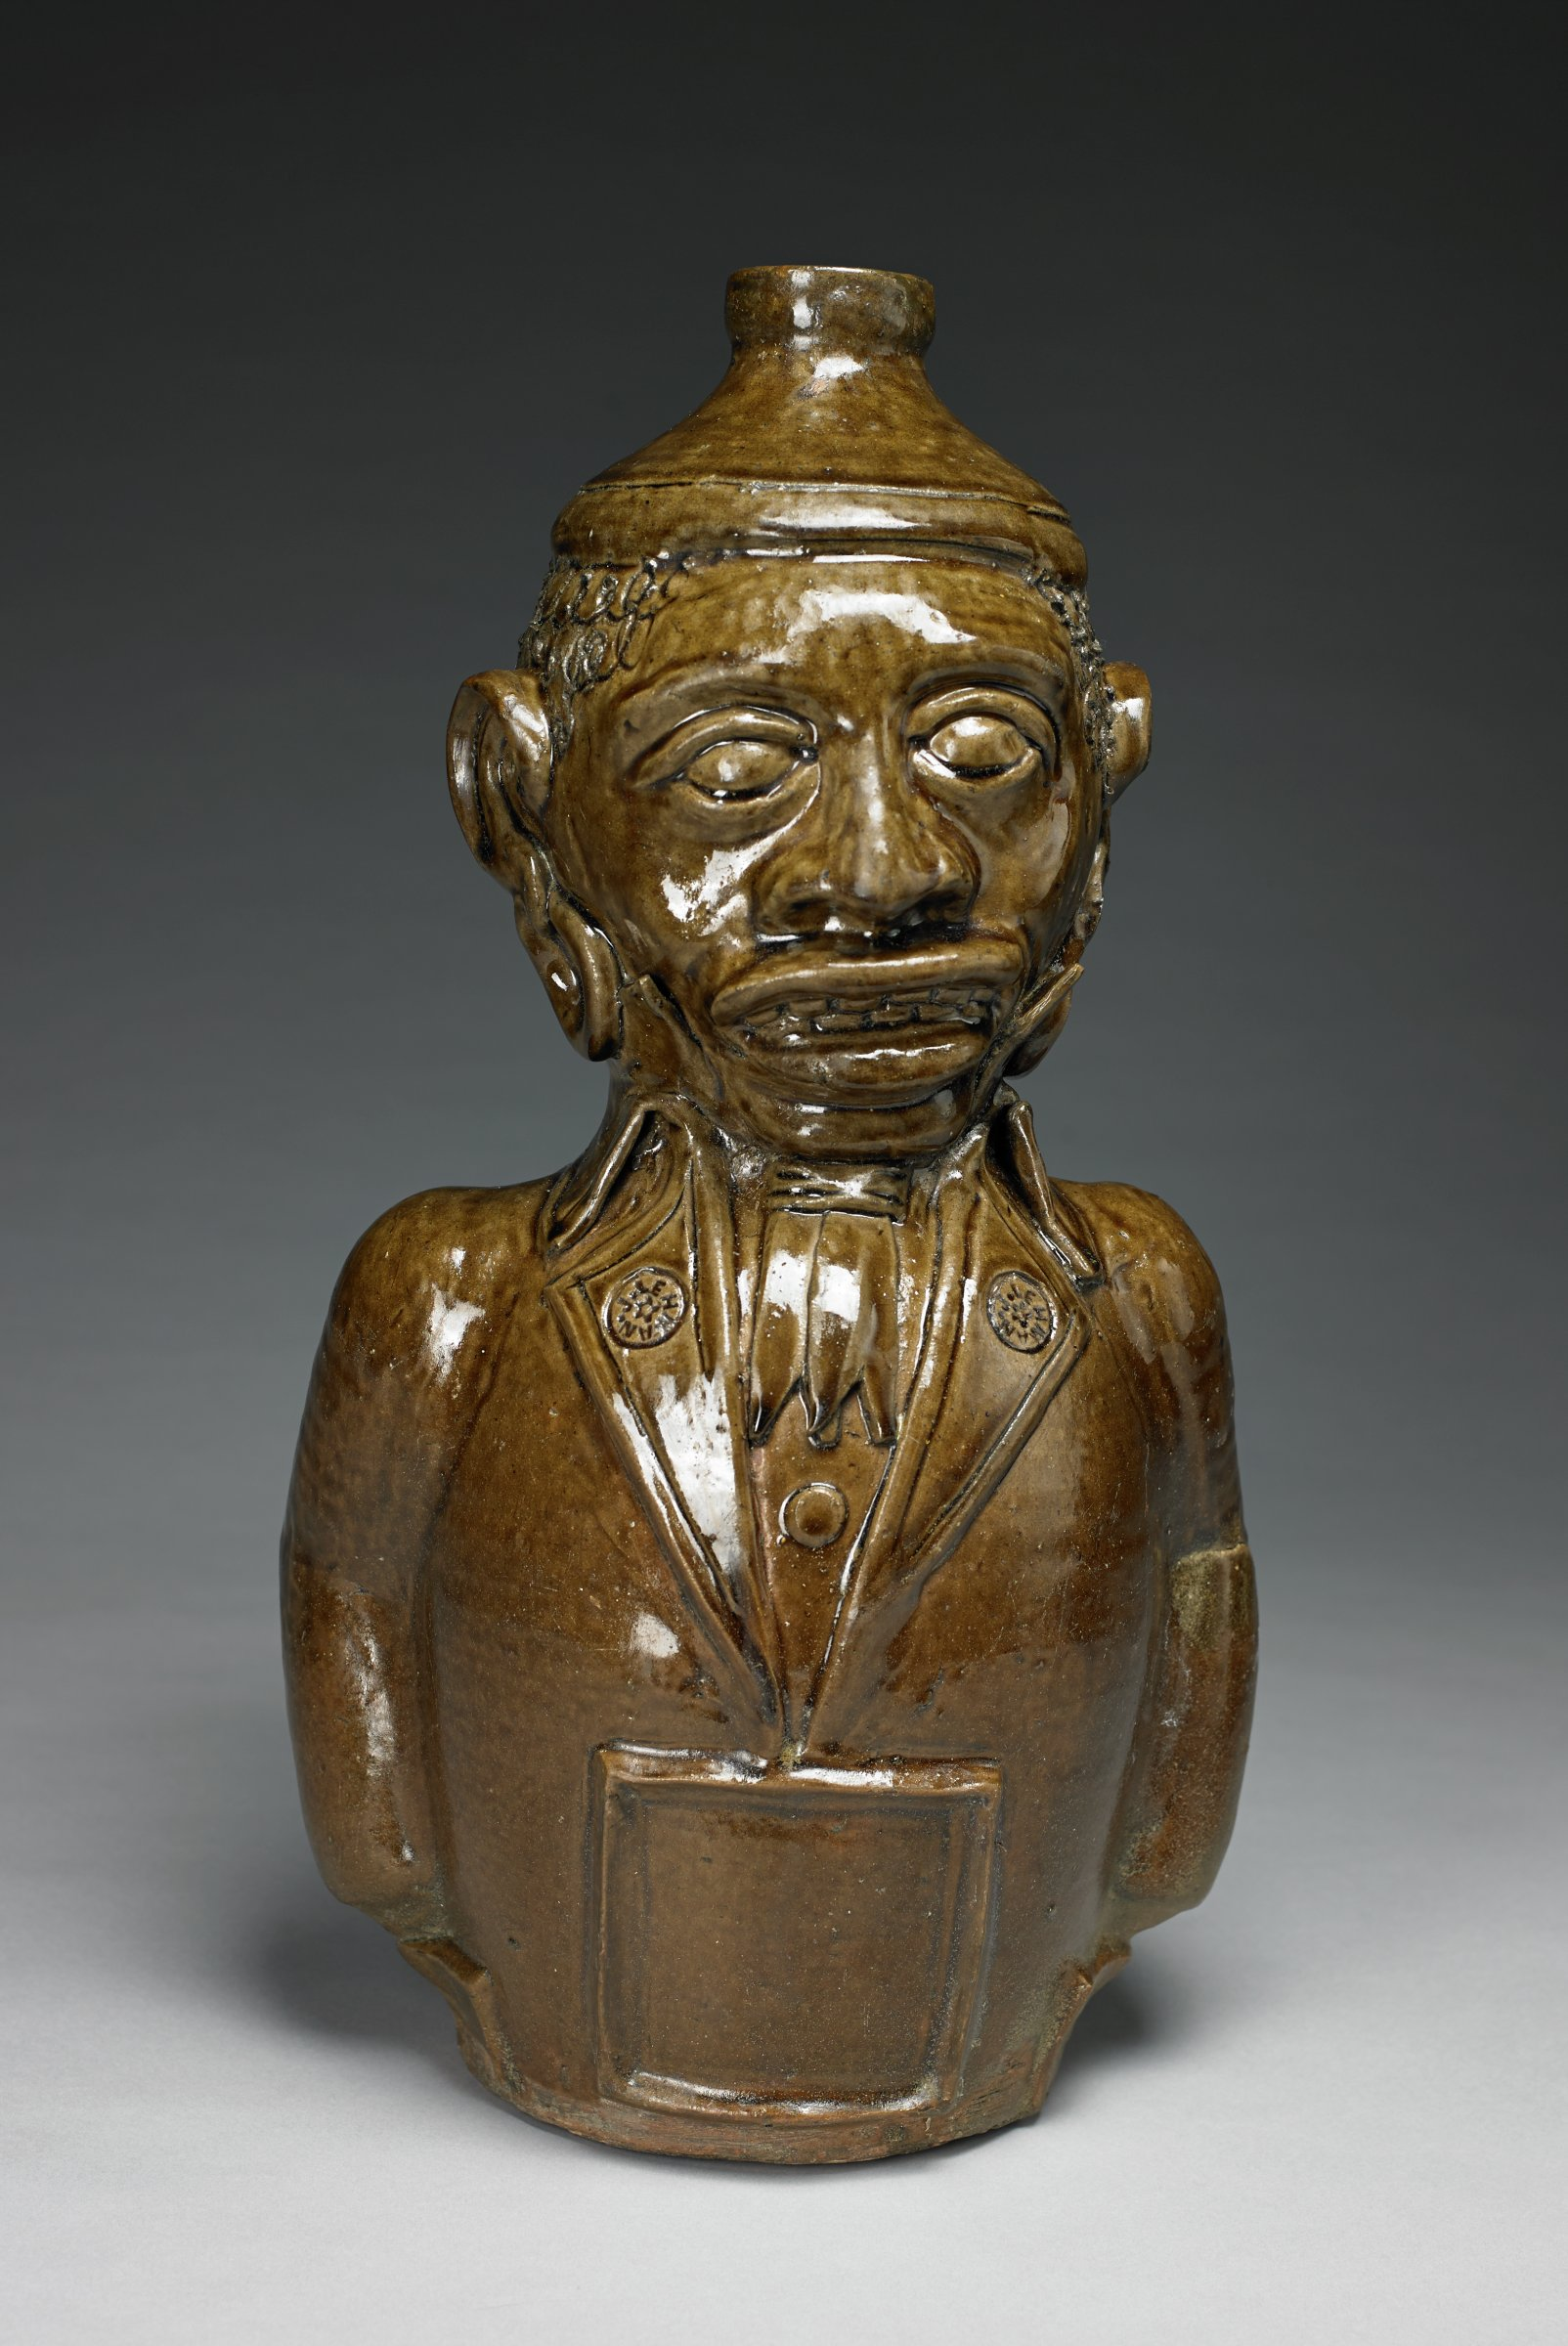 """A figural jug depicting an African-American man with exaggerated facial features, particularly his caricatured lips, nose and ears. His curly hair is formed by incised repeating loops, resembling scribbles. He wears a cap, hoop earrings, shirt with a stand up collar (and single visible stud or button), cravat, and a coat with broad lapels and buttons impressed with """"J. LEHMAN,"""" the maker's name. A large, buckle-like square probably surrounded a paper label for whatever product the jug contained. The figure has arms, but no hands, and is rendered to appear as if his hands are shoved in the pockets of his coat. There are small air holes at the back of each arm to prevent an explosion during firing. The jug's handle is a shaped like the number 9, and is finished (where the tail of the handle meets the body of the jug) with a mold-formed grape and grape leaf motif found in some of Lehman's other decorated vessels. There appears to be an oval incised on the bottom of the vessel."""